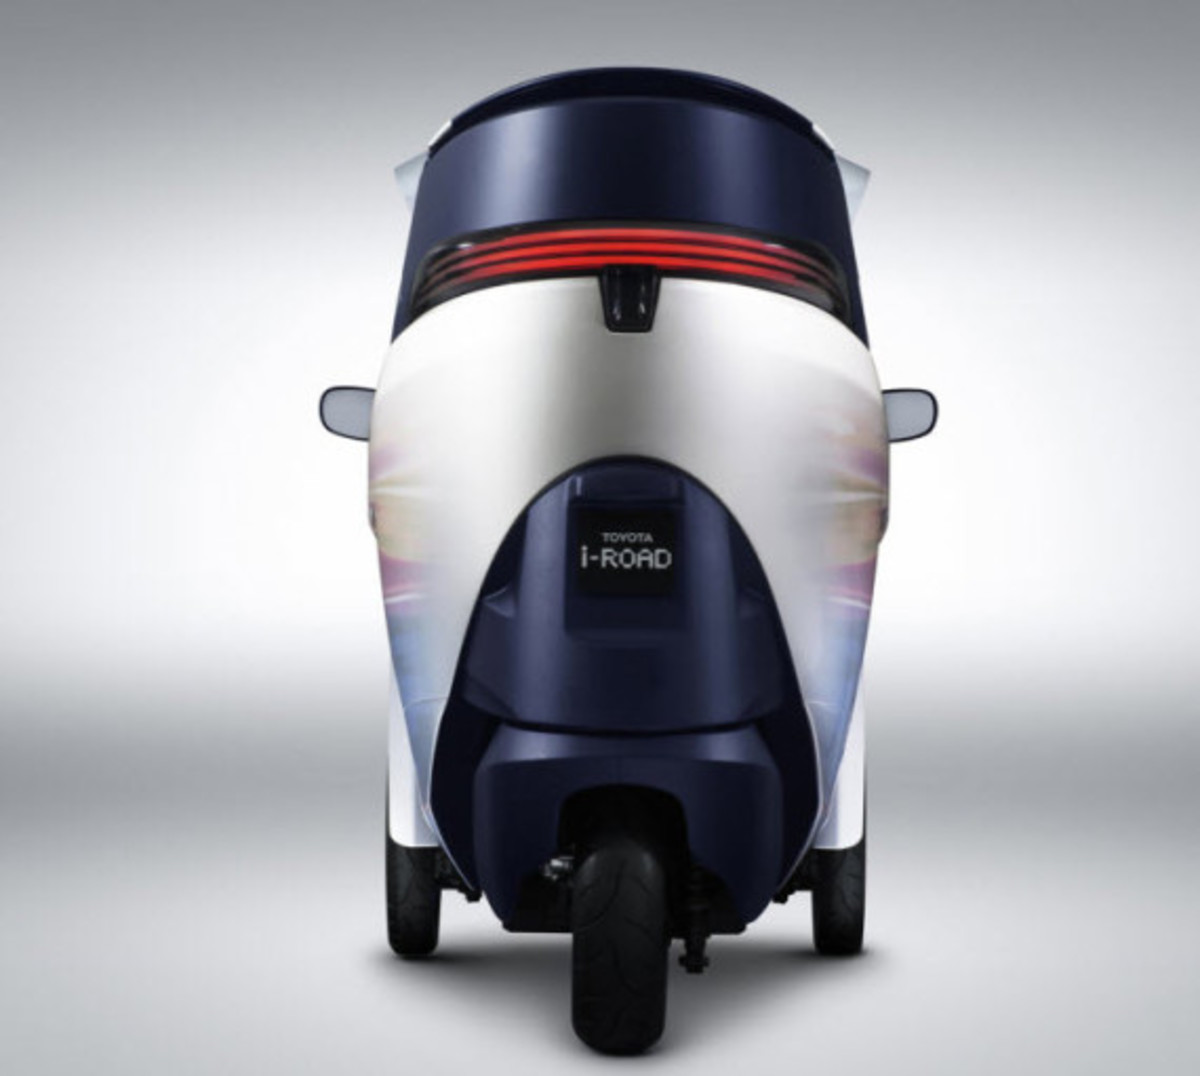 toyota-i-road-personal-mobility-concept-5